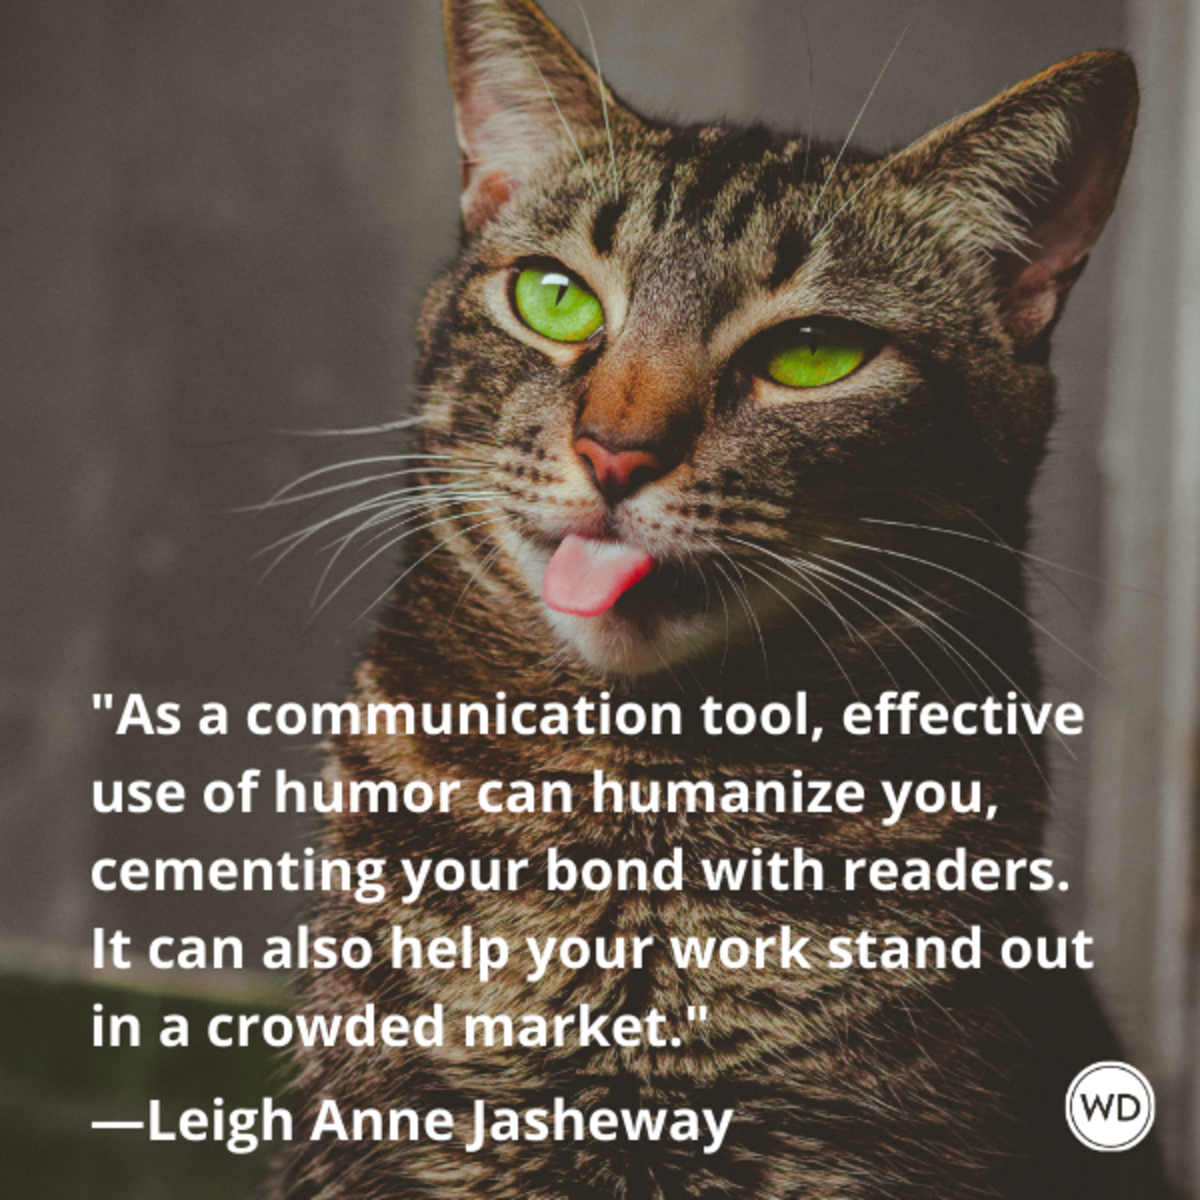 leigh_anne_jasheway_quotes_as_a_communication_tool_effective_use_of_humor_can_humanize_you_cementing_your_bond_with_readers